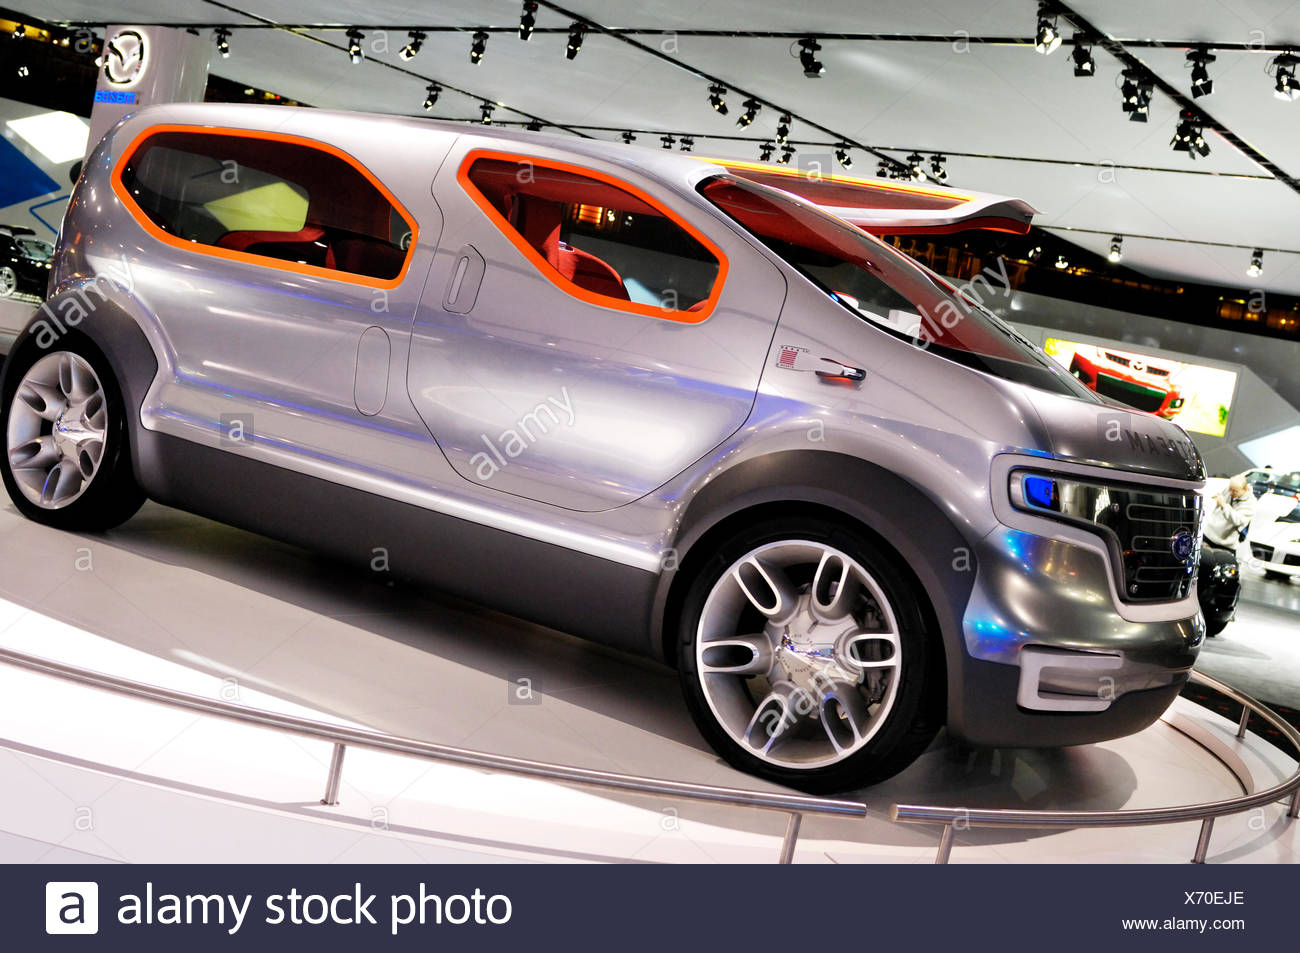 Ford, Airstream crossover futuristico concept car powered by HySeries drive plug-in idrogeno ibrido di celle a combustibile Immagini Stock